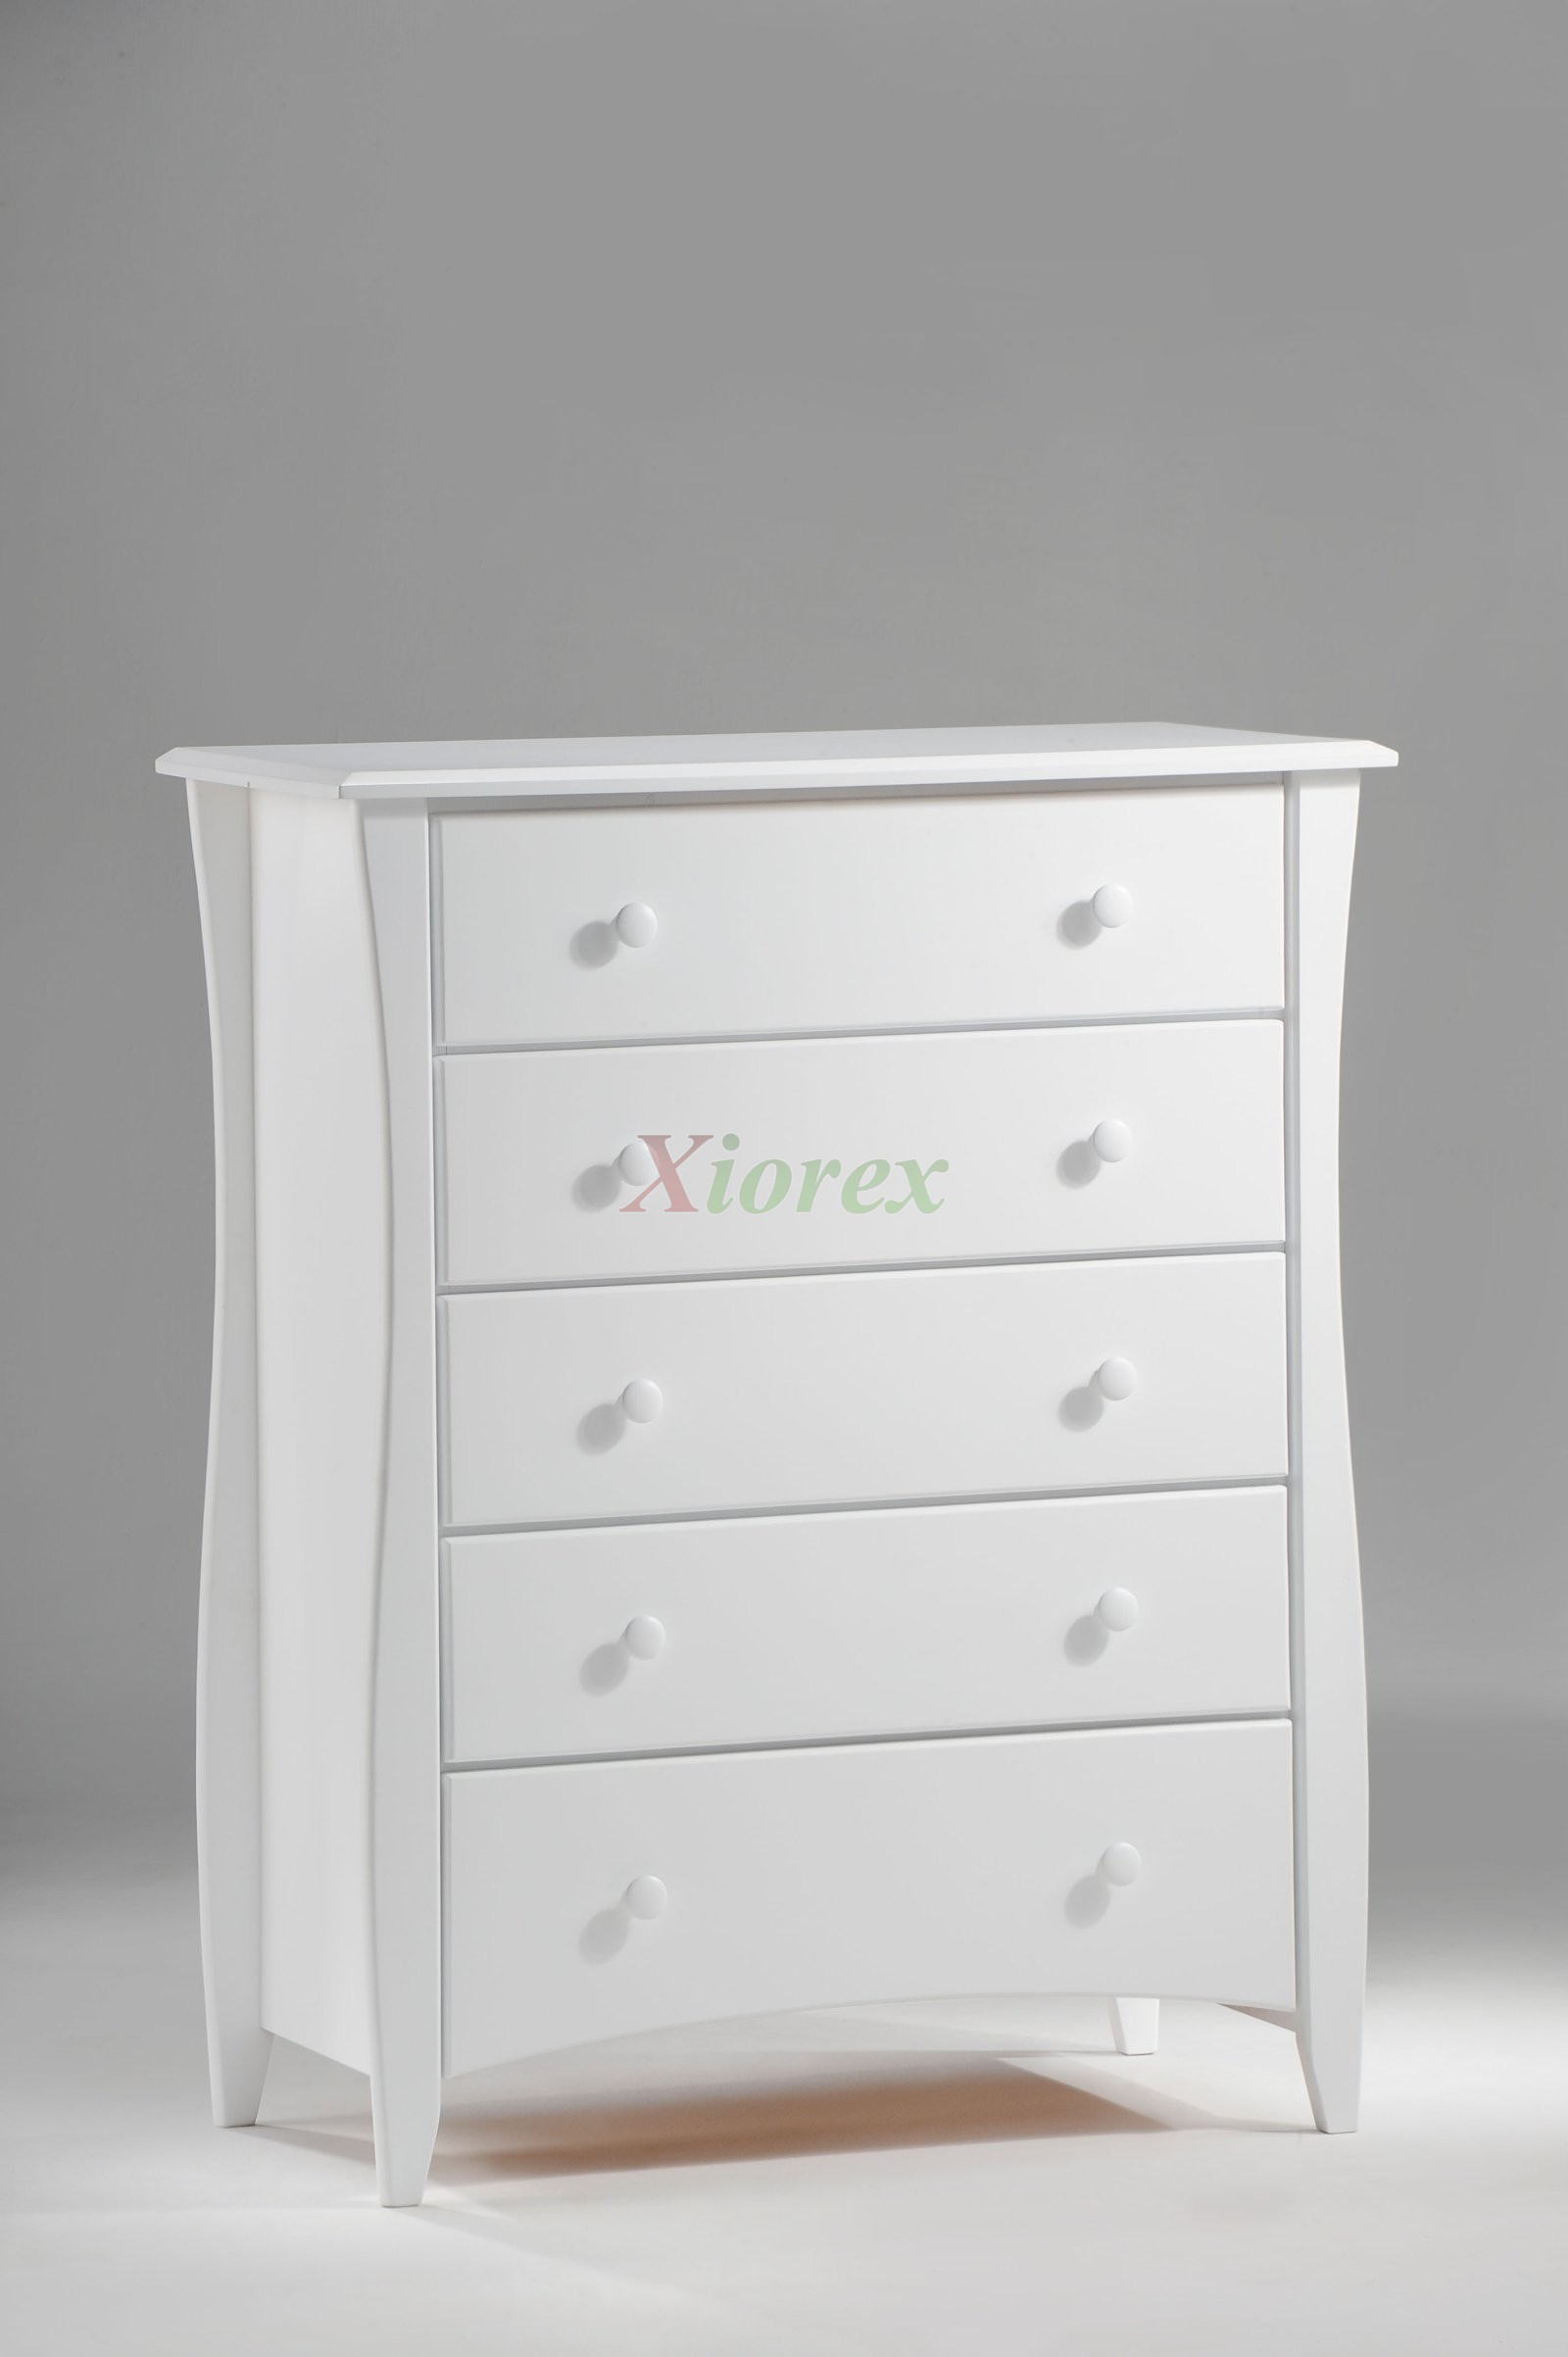 Clove Chest Of Drawers White For Spices Bedroom Furniture Sets   Xiorex